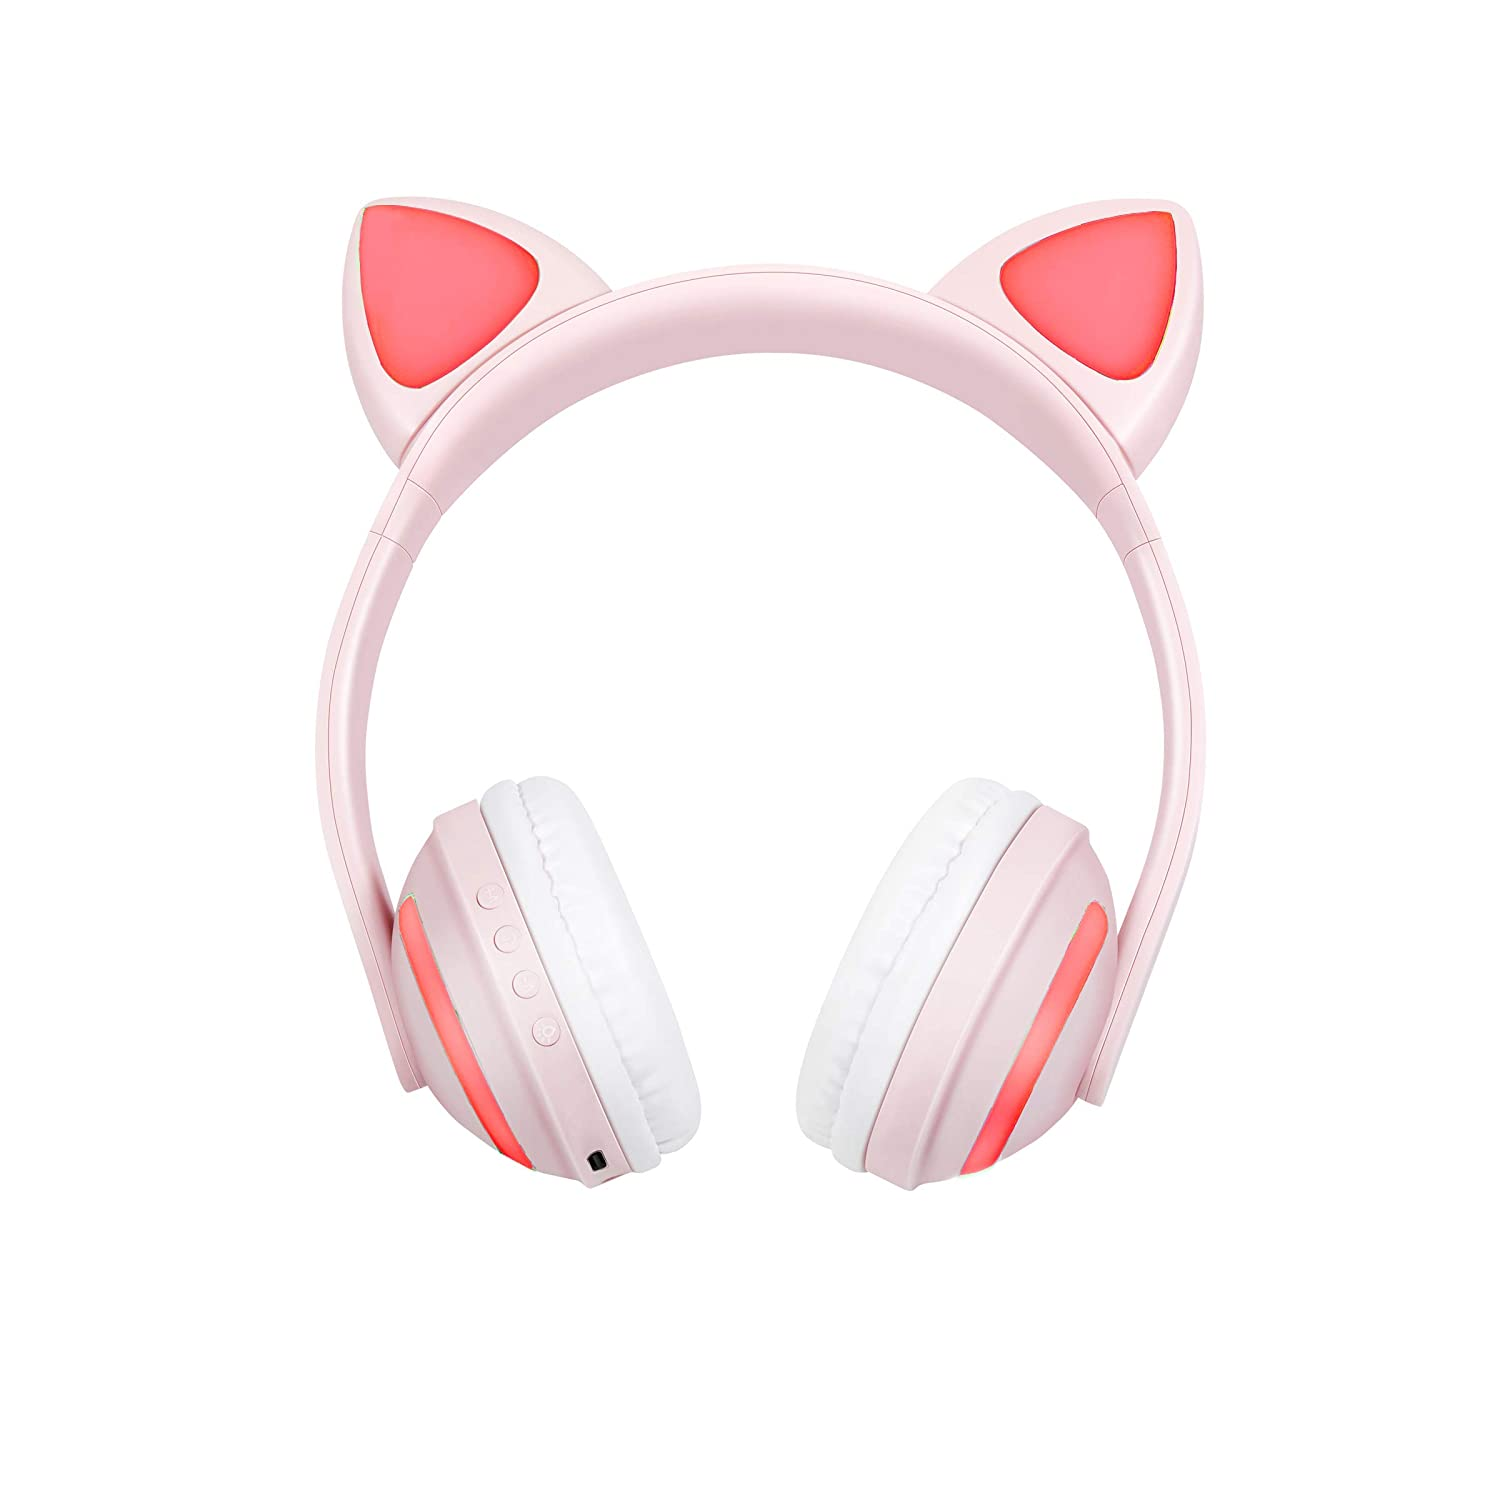 Treesine Wireless Bluetooth LED Cat Ear Headphones for Girls, Kids, 7-Color Color Changing Glowing Over Cosplay Cat Ears Gaming Headsets with Microphone for Smartphones PC Tablet (Pink)